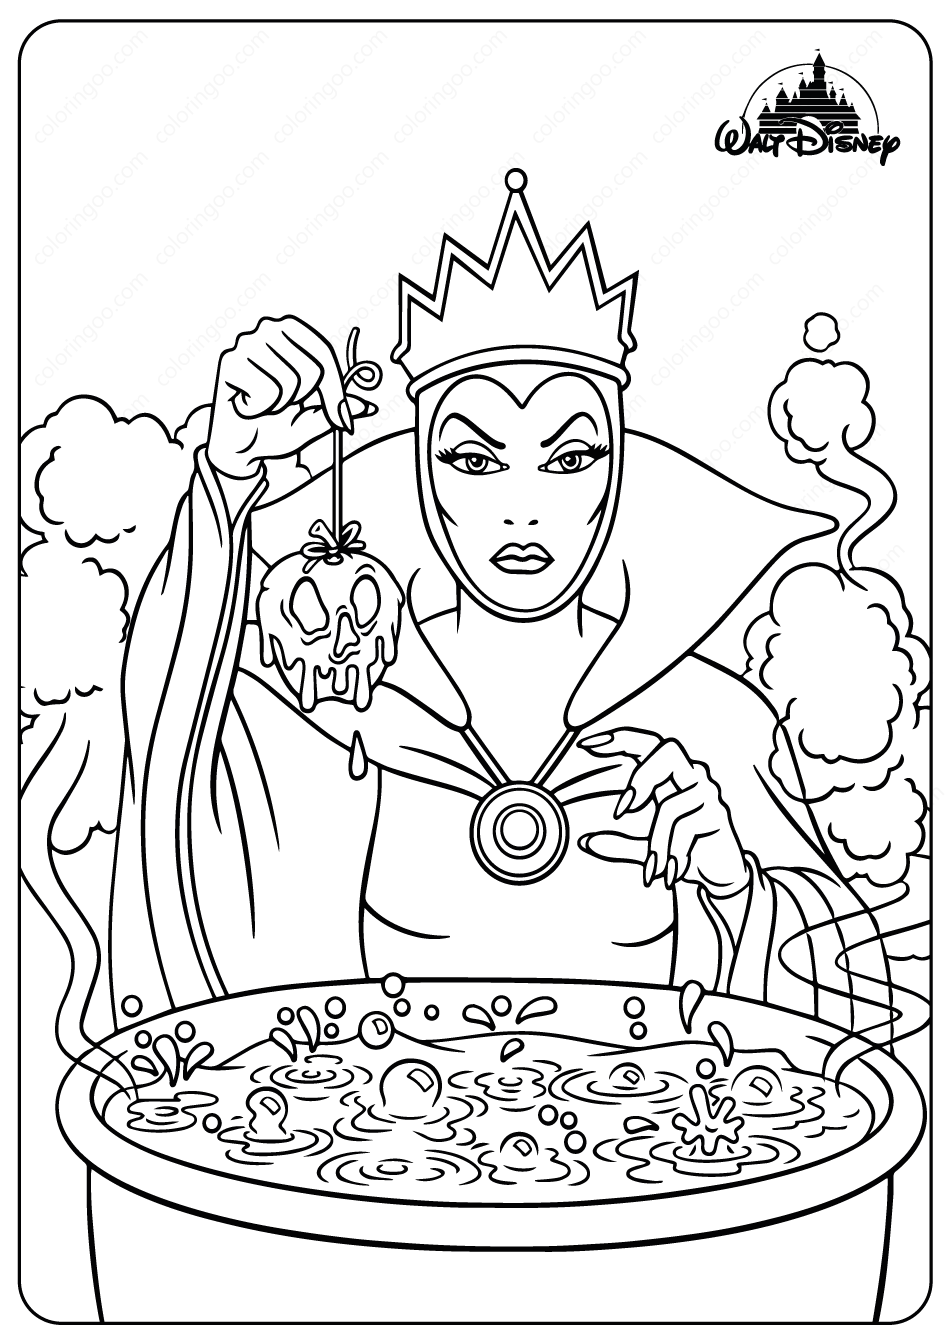 evil queen coloring pages free printable evil queen coloring picture assignment pages queen coloring evil